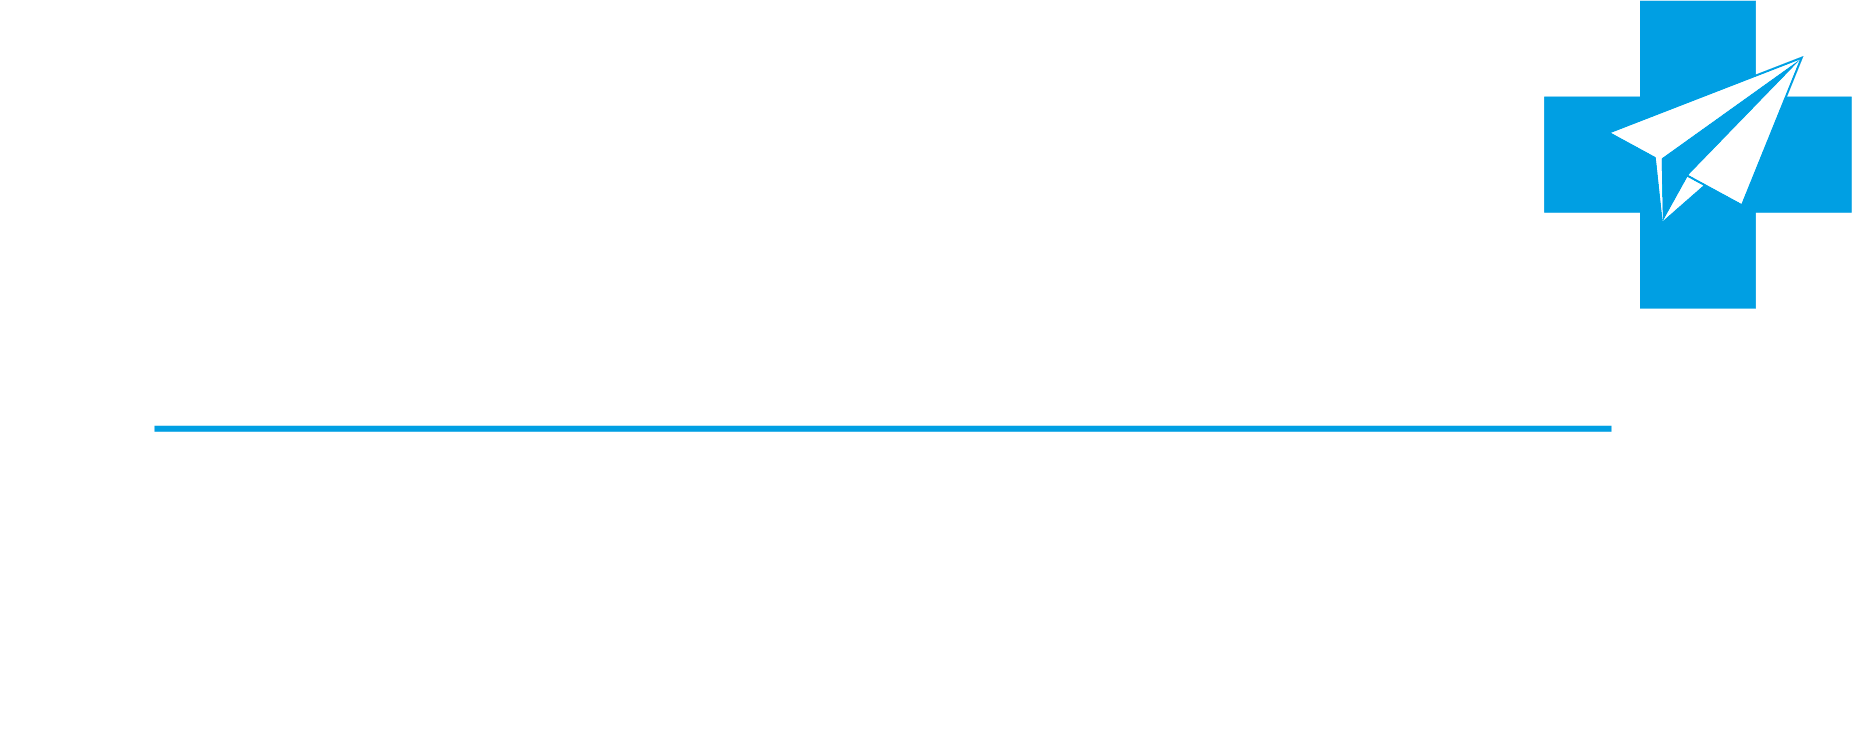 Good Doctors Medical Clinics